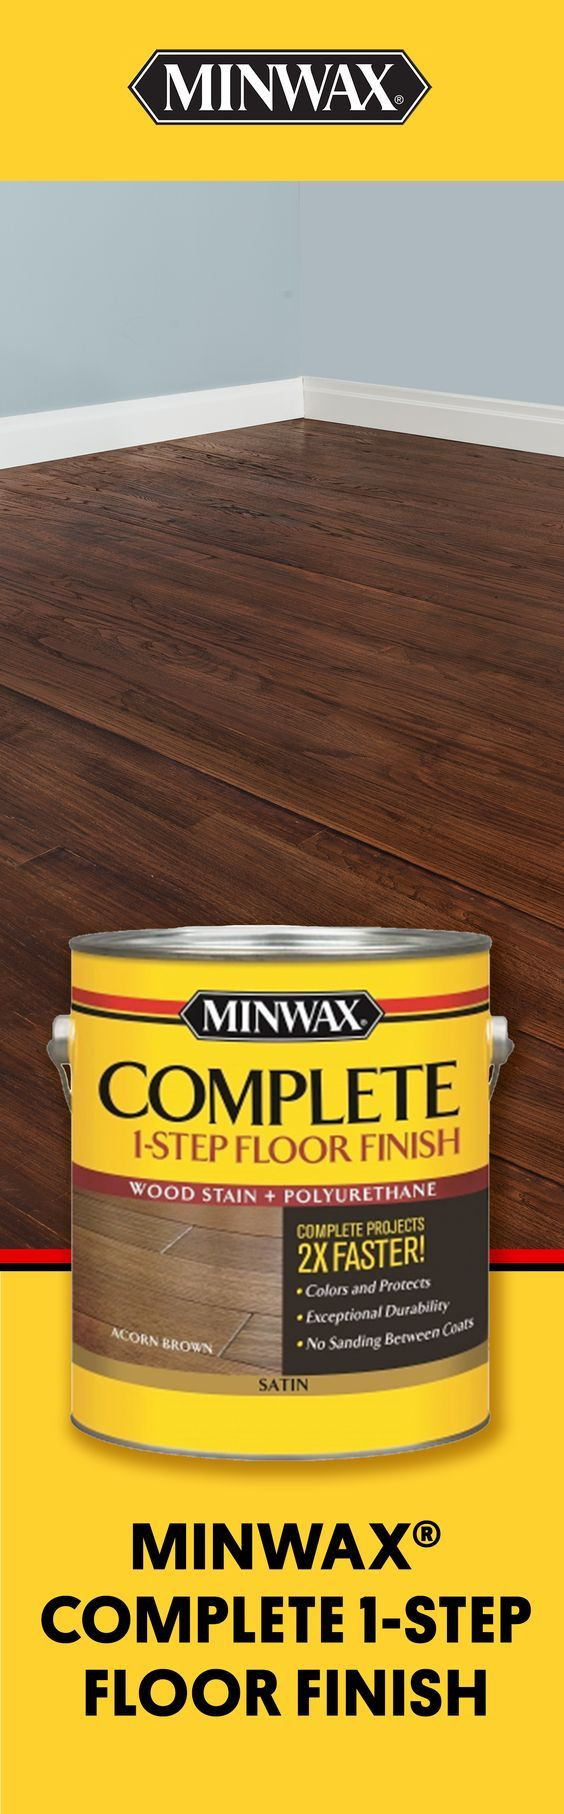 minwax hardwood floor wax of ready to bring your wood floors to life apply rich color and throughout ready to bring your wood floors to life apply rich color and protective finish in one easy step with minwaxa complete 1 step floor finish you can